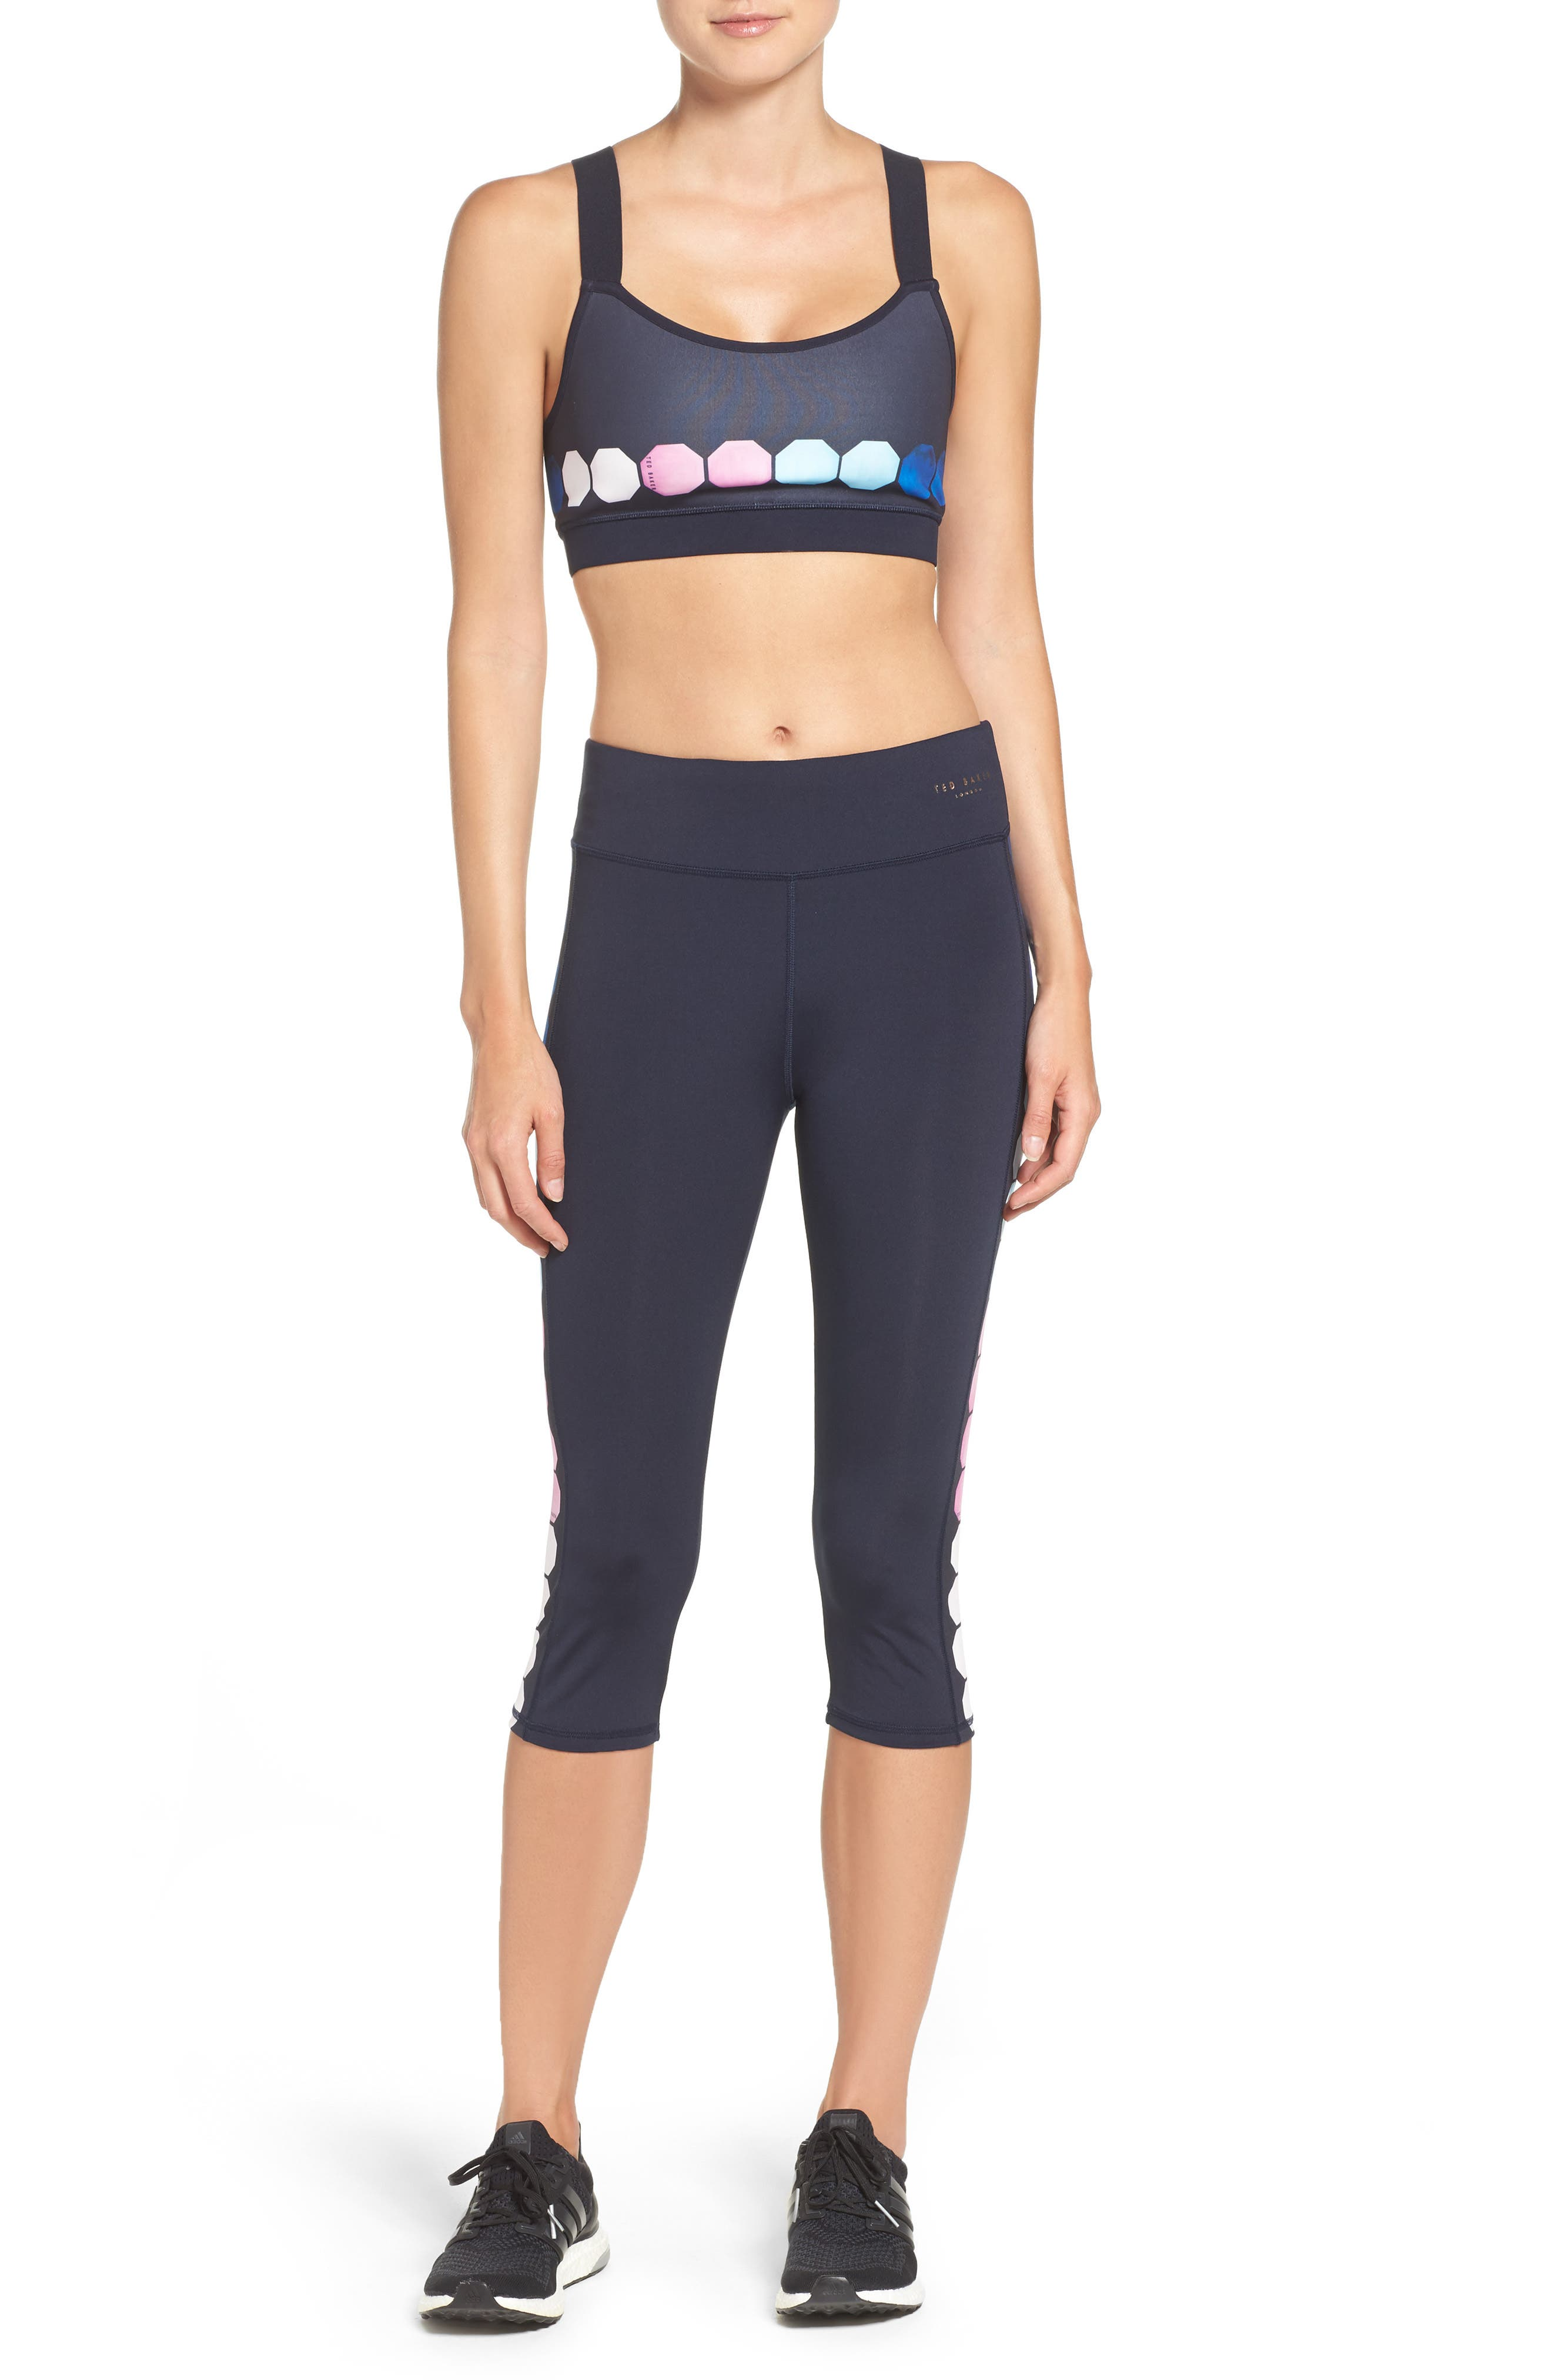 Ted Baker London Sports Bra & Capris Outfit